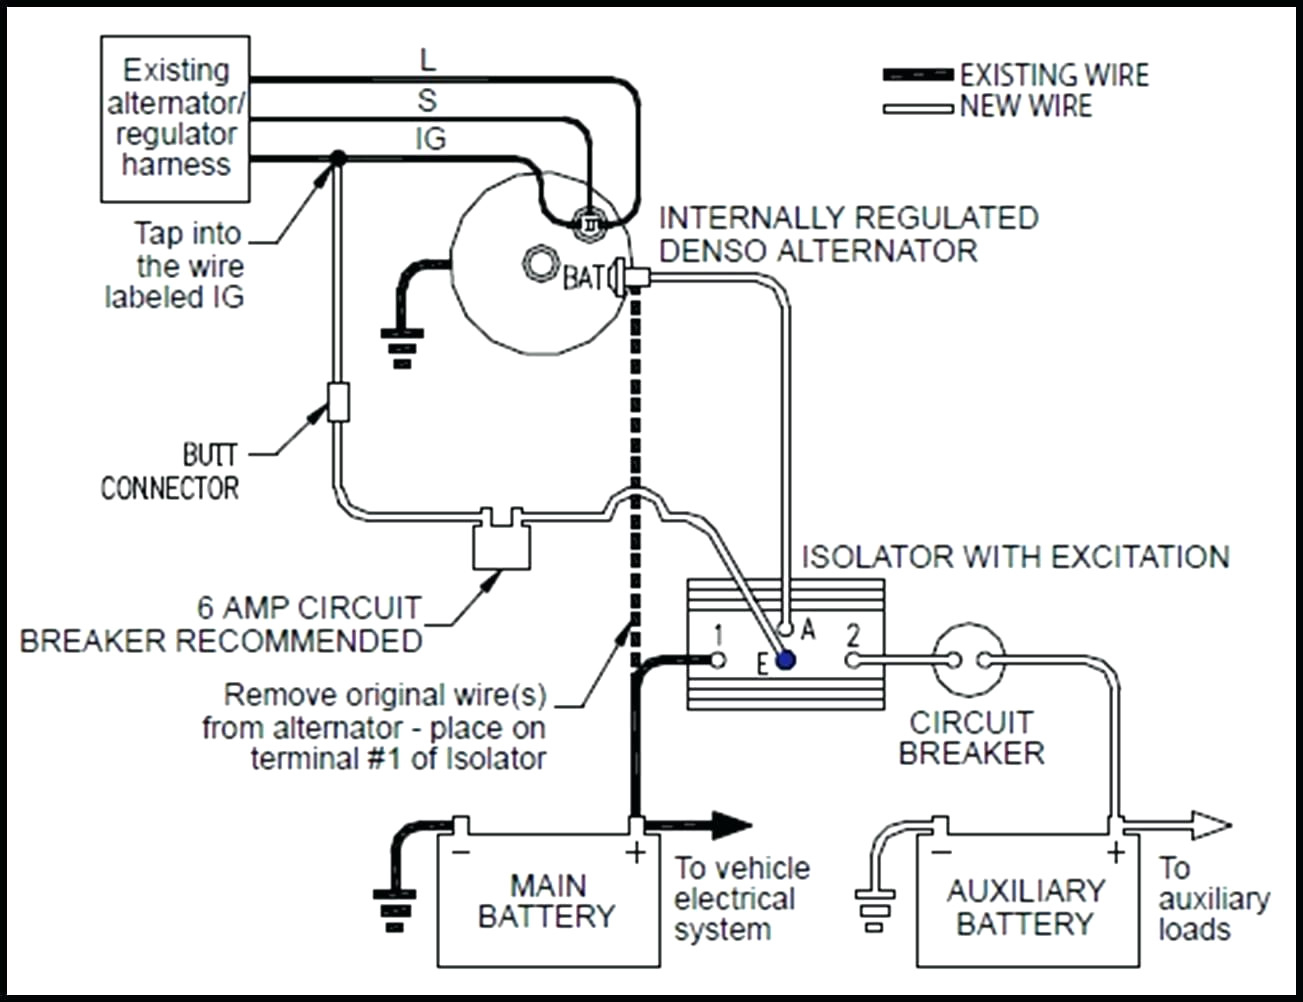 Cole Hersee Smart Battery Isolator Wiring Diagram from wholefoodsonabudget.com